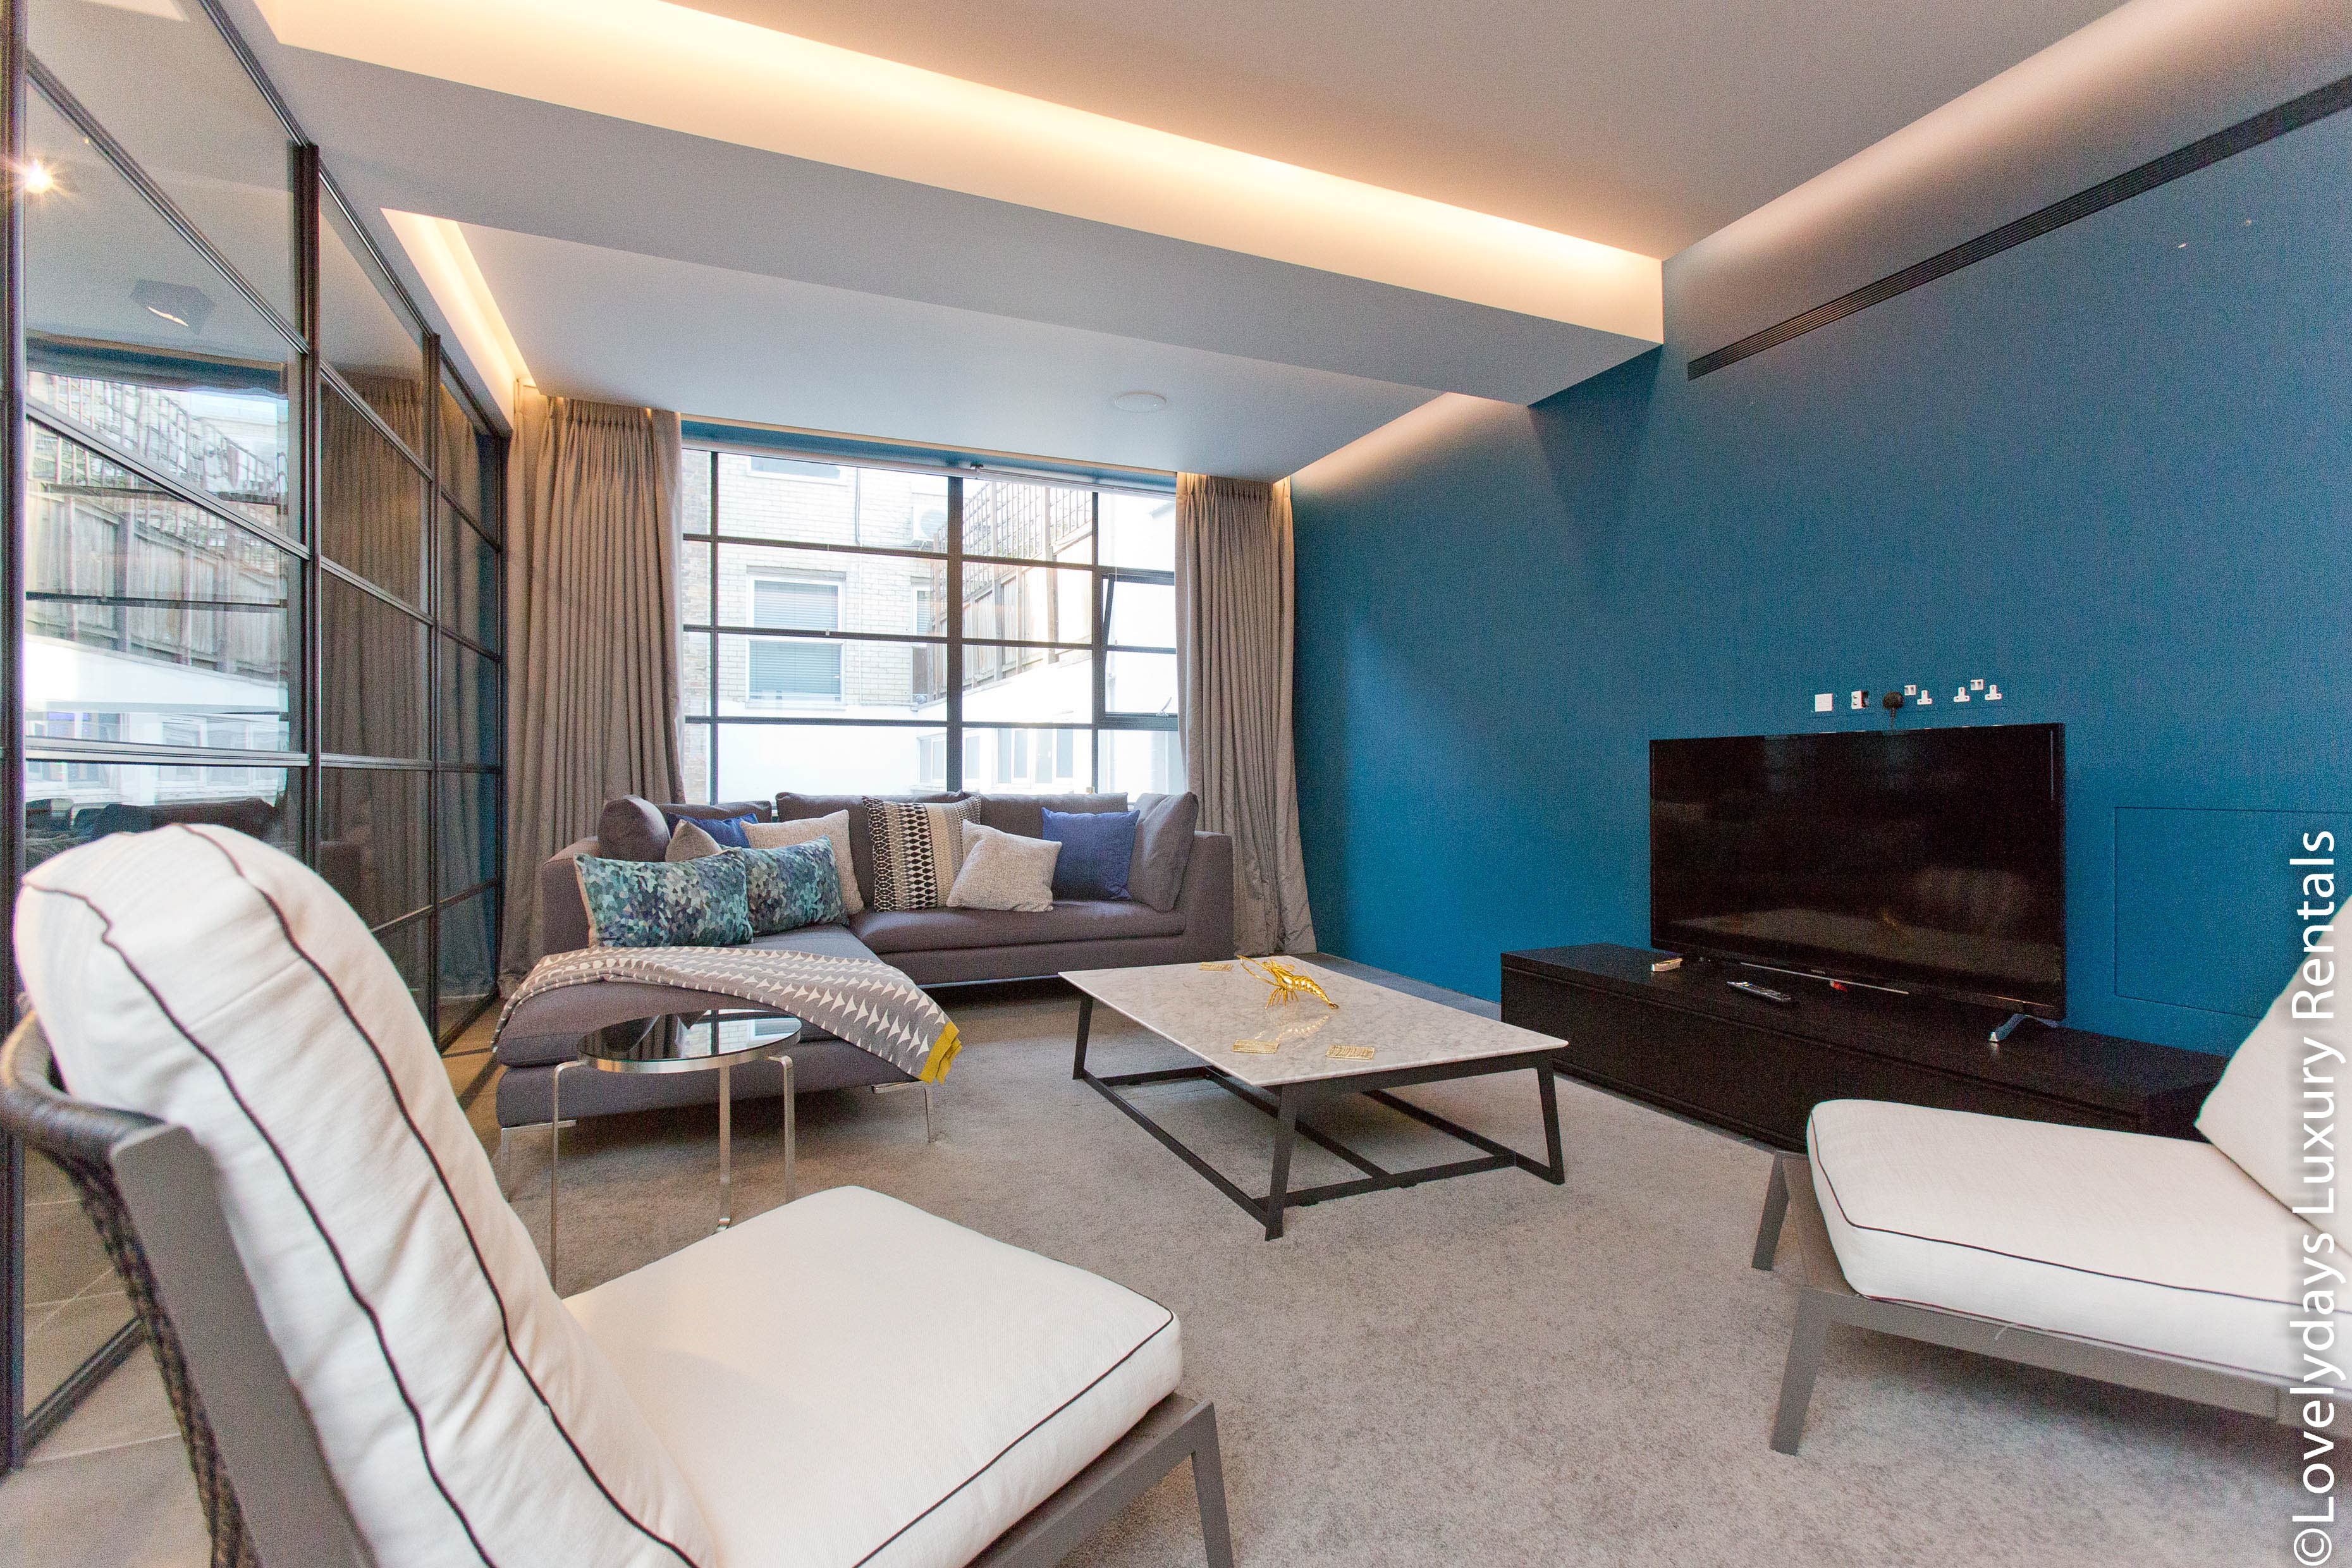 Lovelydays luxury service apartment rental - London - Soho - Royalty Mews III - Partner - 2 bedrooms - 2 bathrooms - Luxury living room - b7c70772c03e - Lovelydays